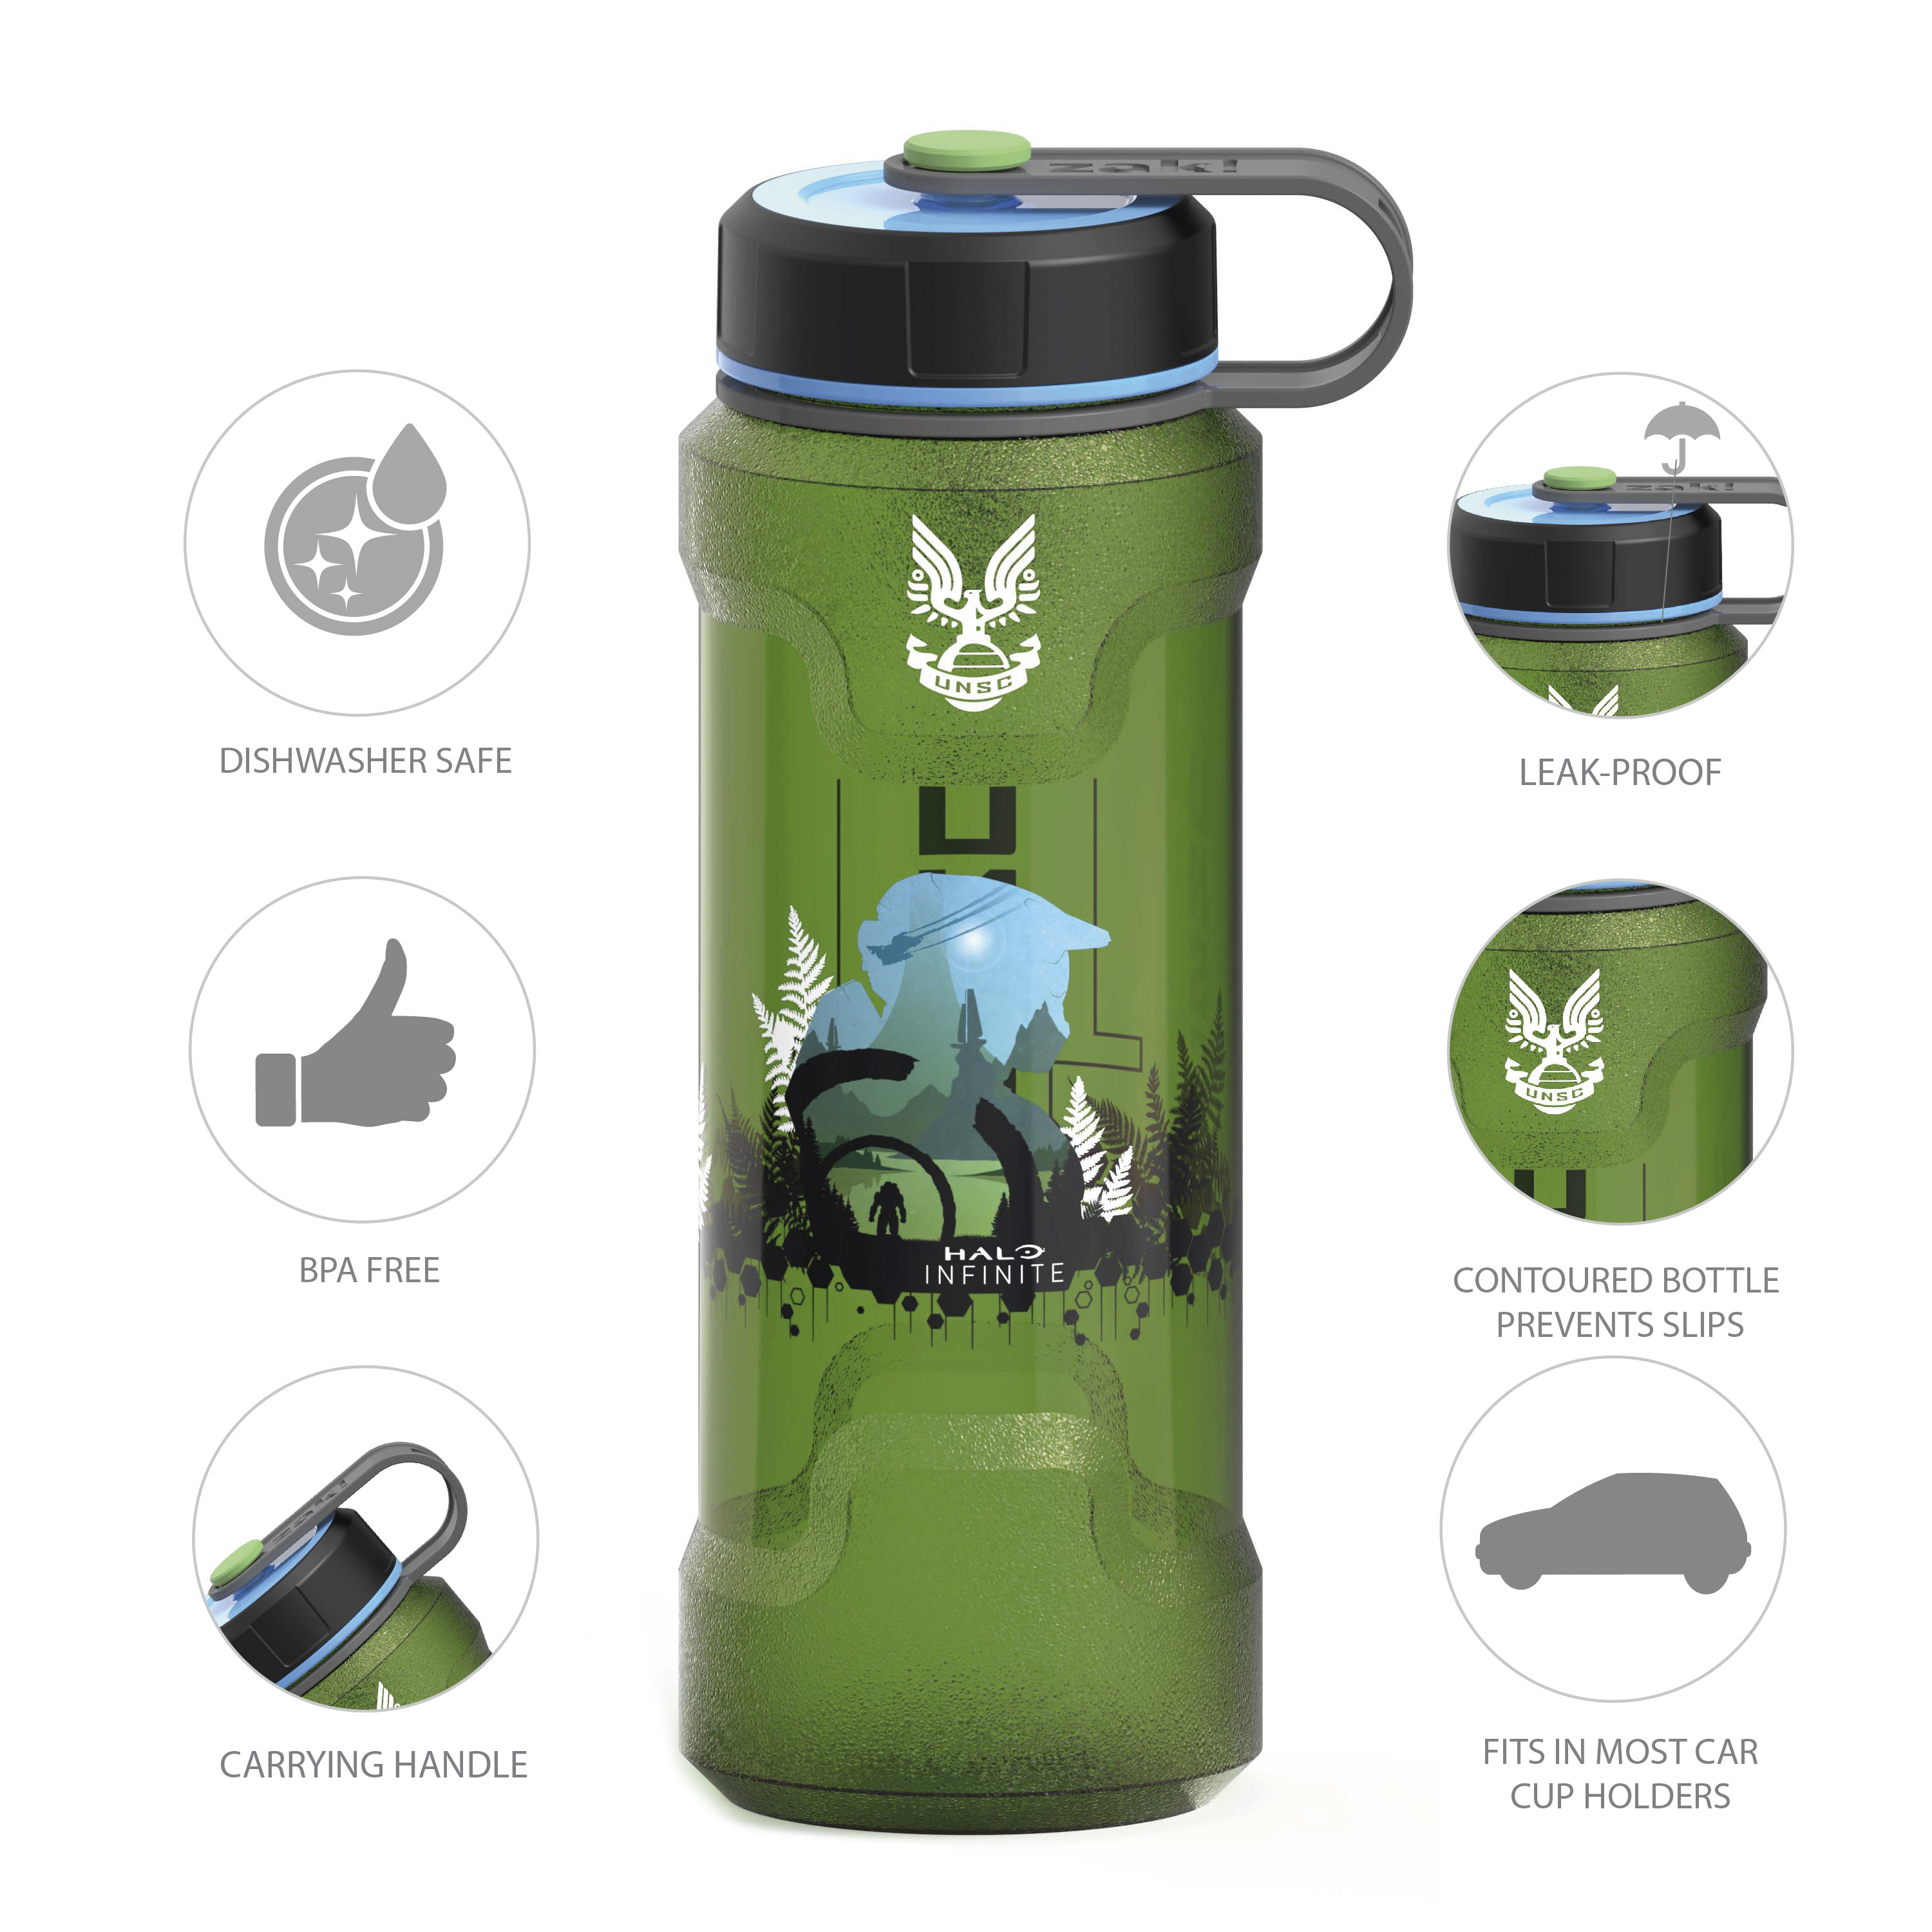 Halo 36 ounce Reusable Plastic Water Bottle, United Nations Space Command slideshow image 4